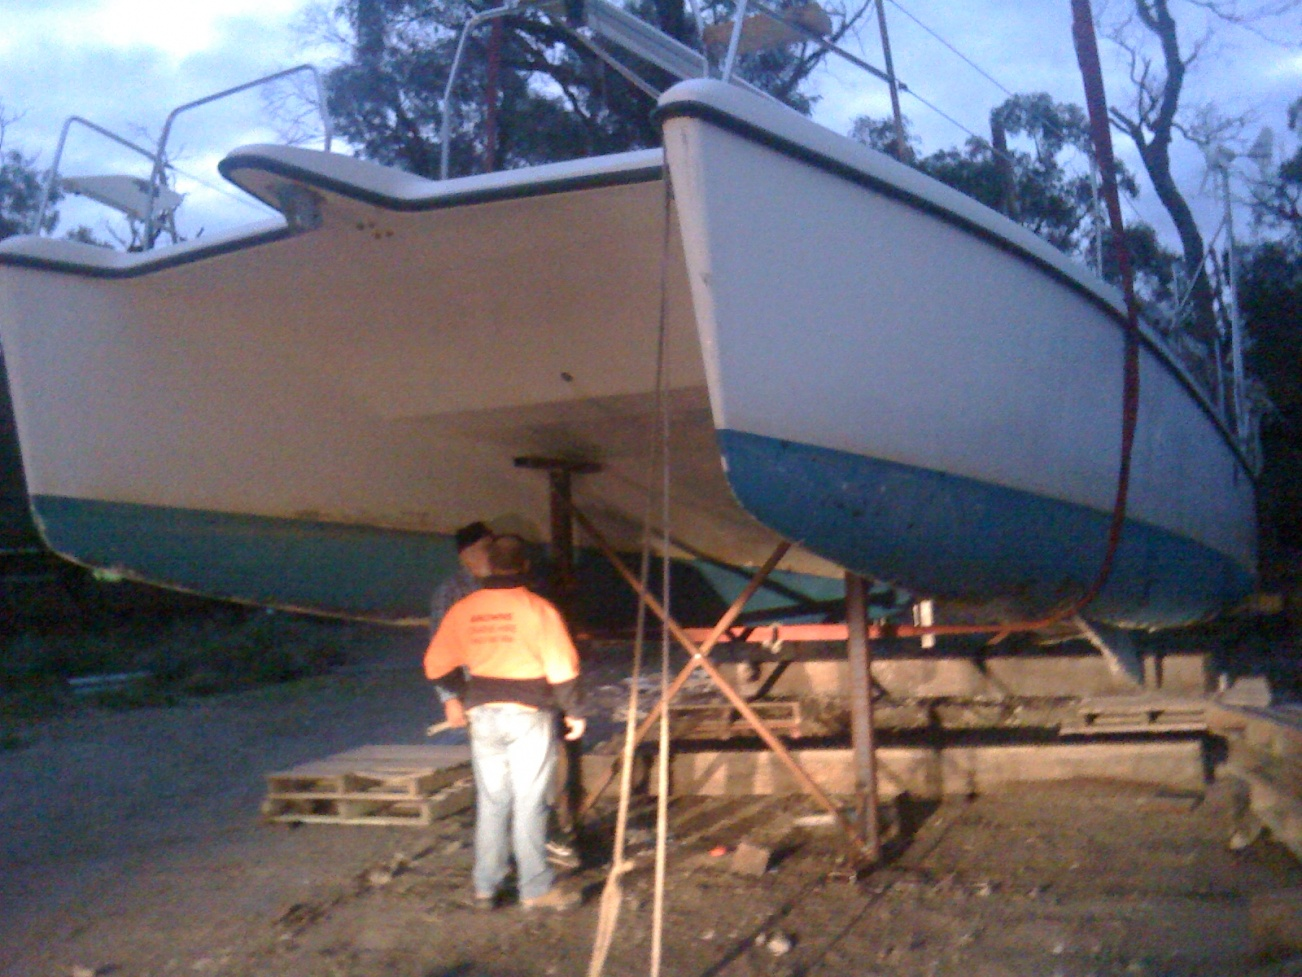 Click image for larger version  Name:Boat at Yaringa falling off stands, 197.jpg Views:79 Size:418.6 KB ID:64802